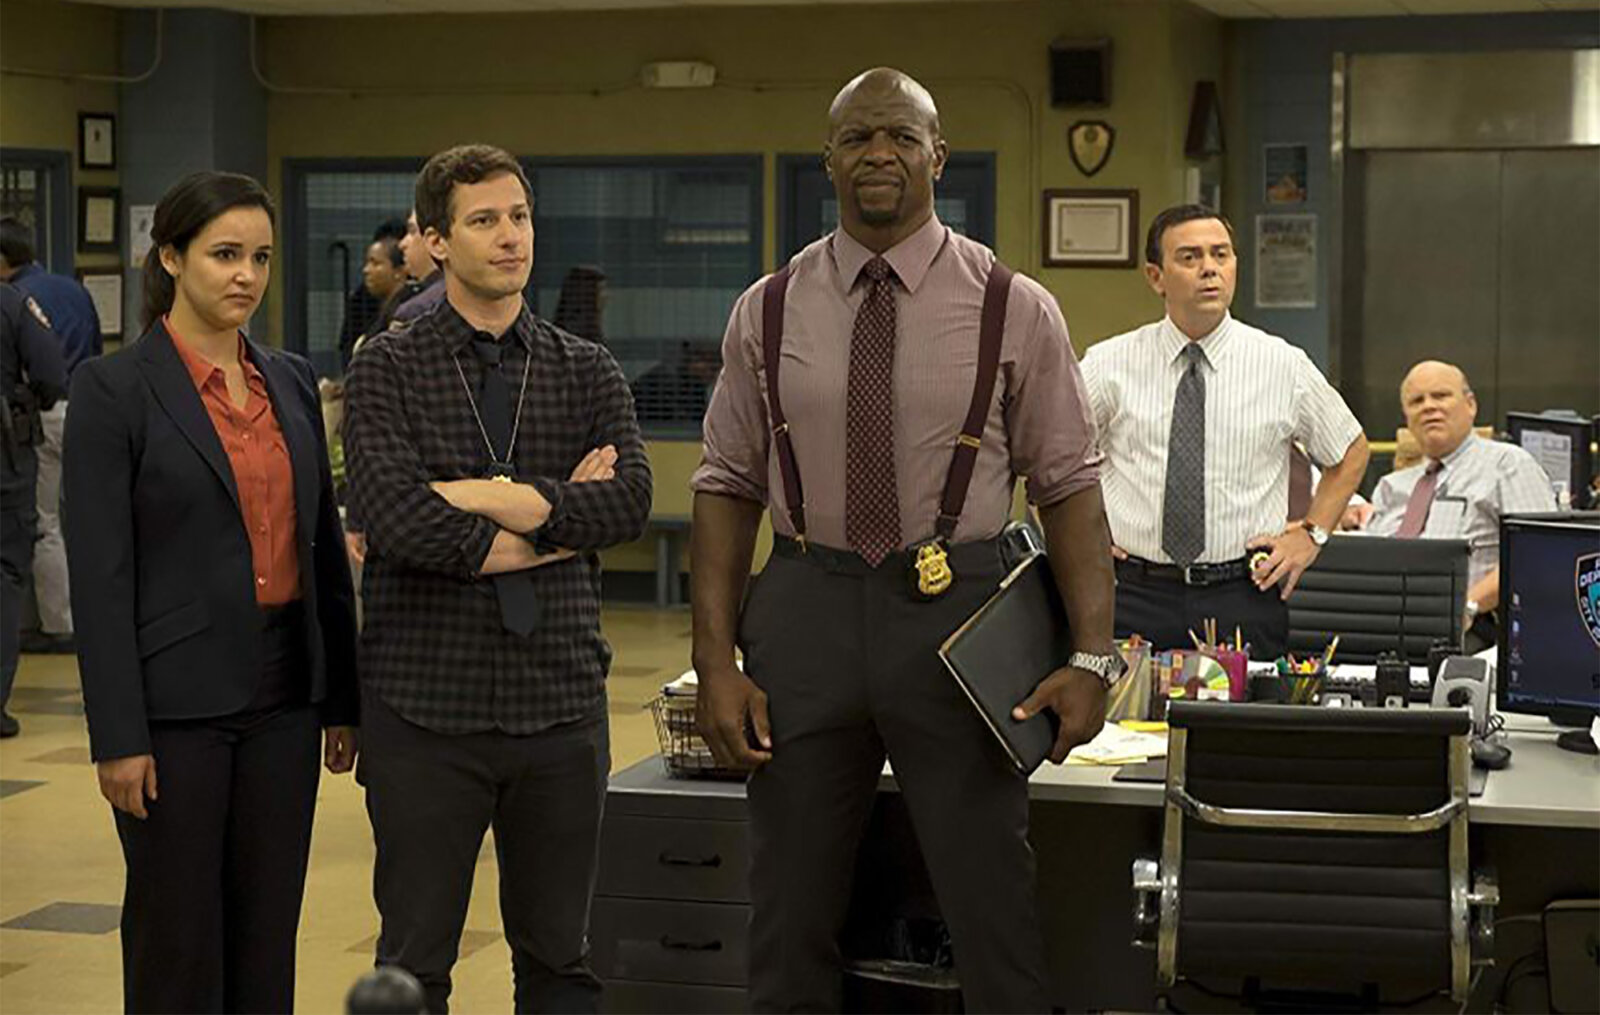 """Brooklyn 99 to """"start over"""" and rewrite episodes in light of the anti-racism protests, The Manc"""